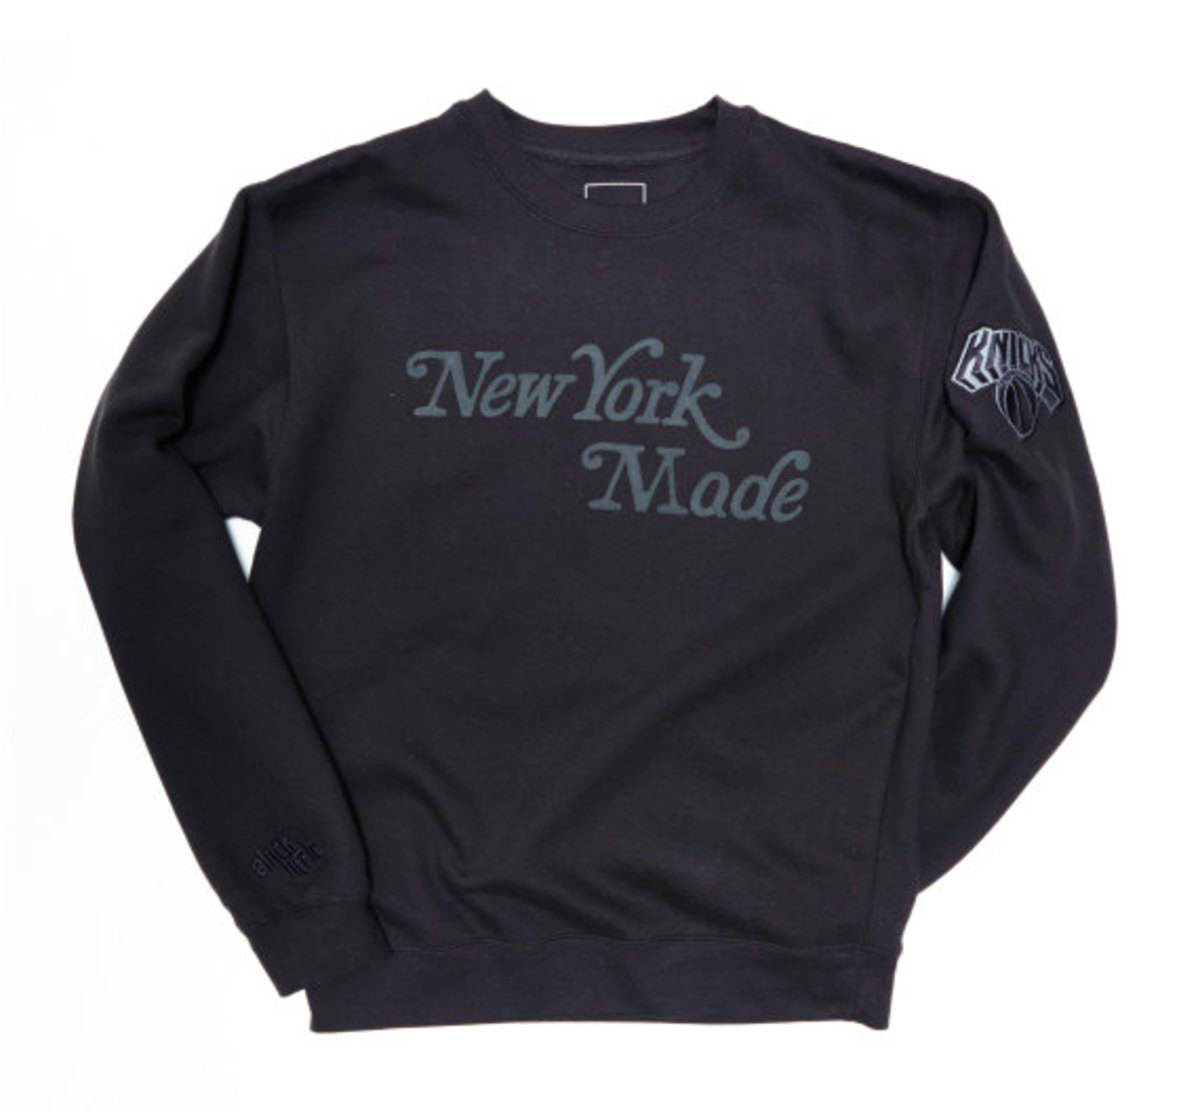 Public School: Black Apple x New York Knicks - Fall/Winter 2014 Capsule Collection - 3